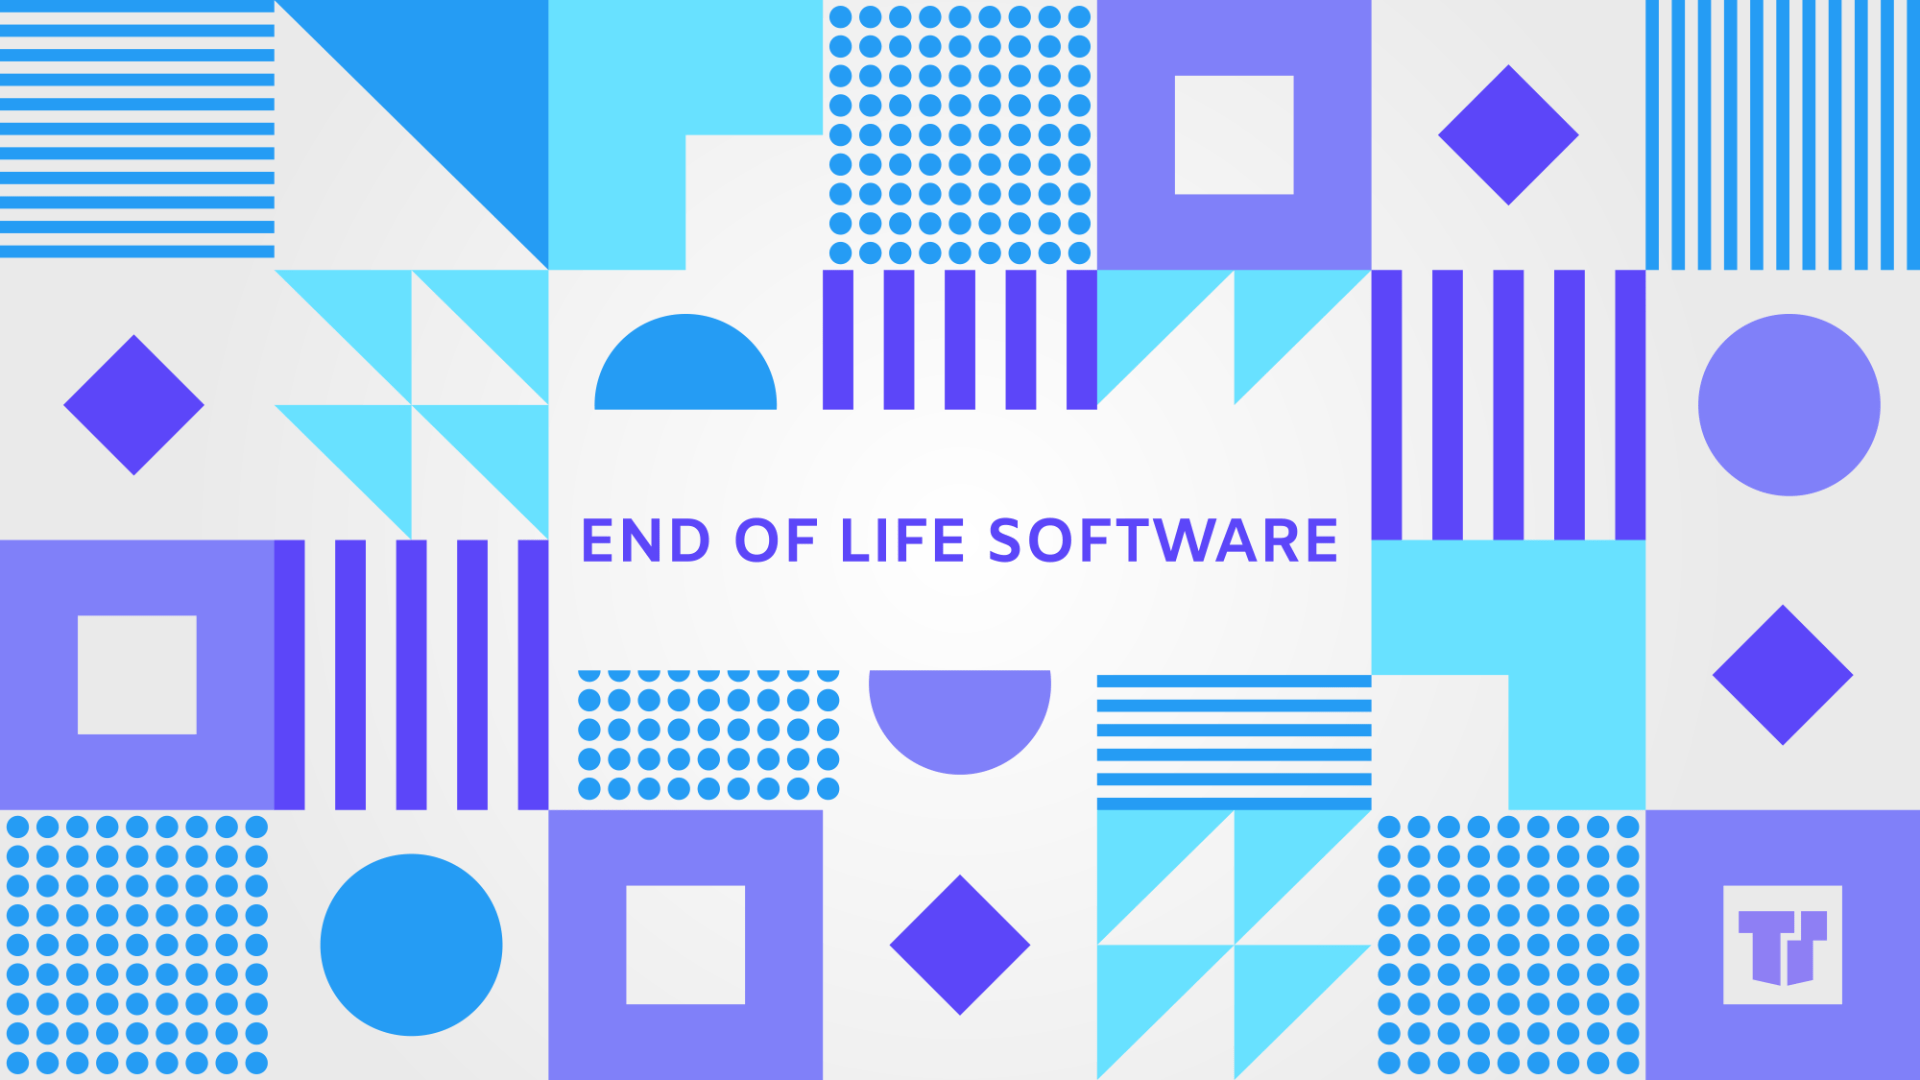 Evaluating End of Life (EOL) Software cover image